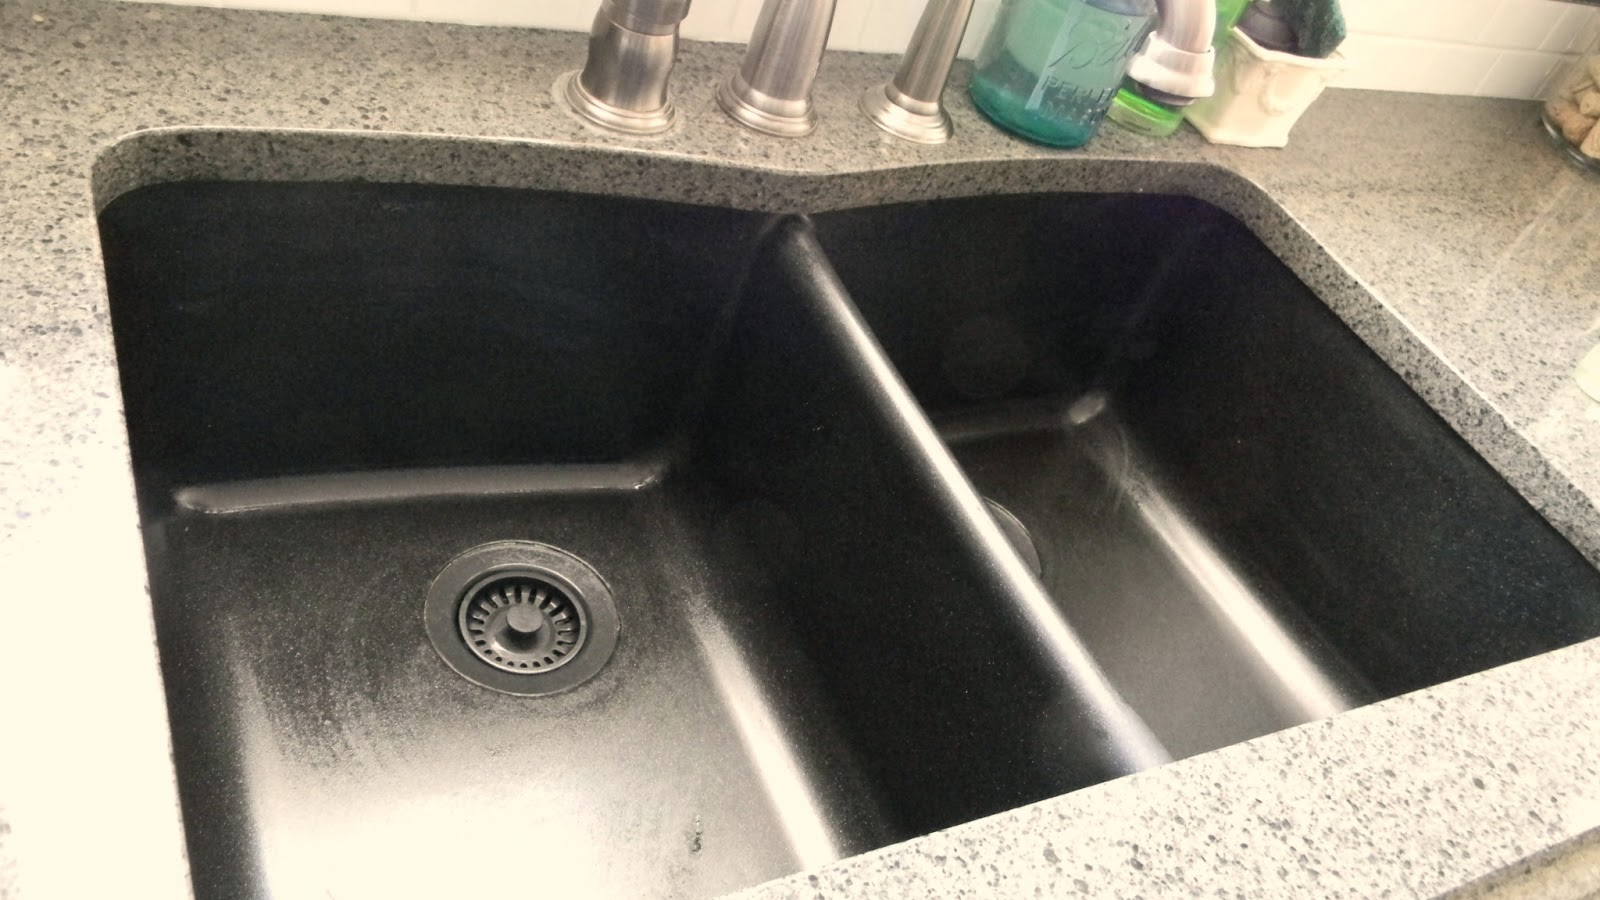 Stone Sink Cleaner : ave you ever wondered how to keep your granite sink looking new? I ...